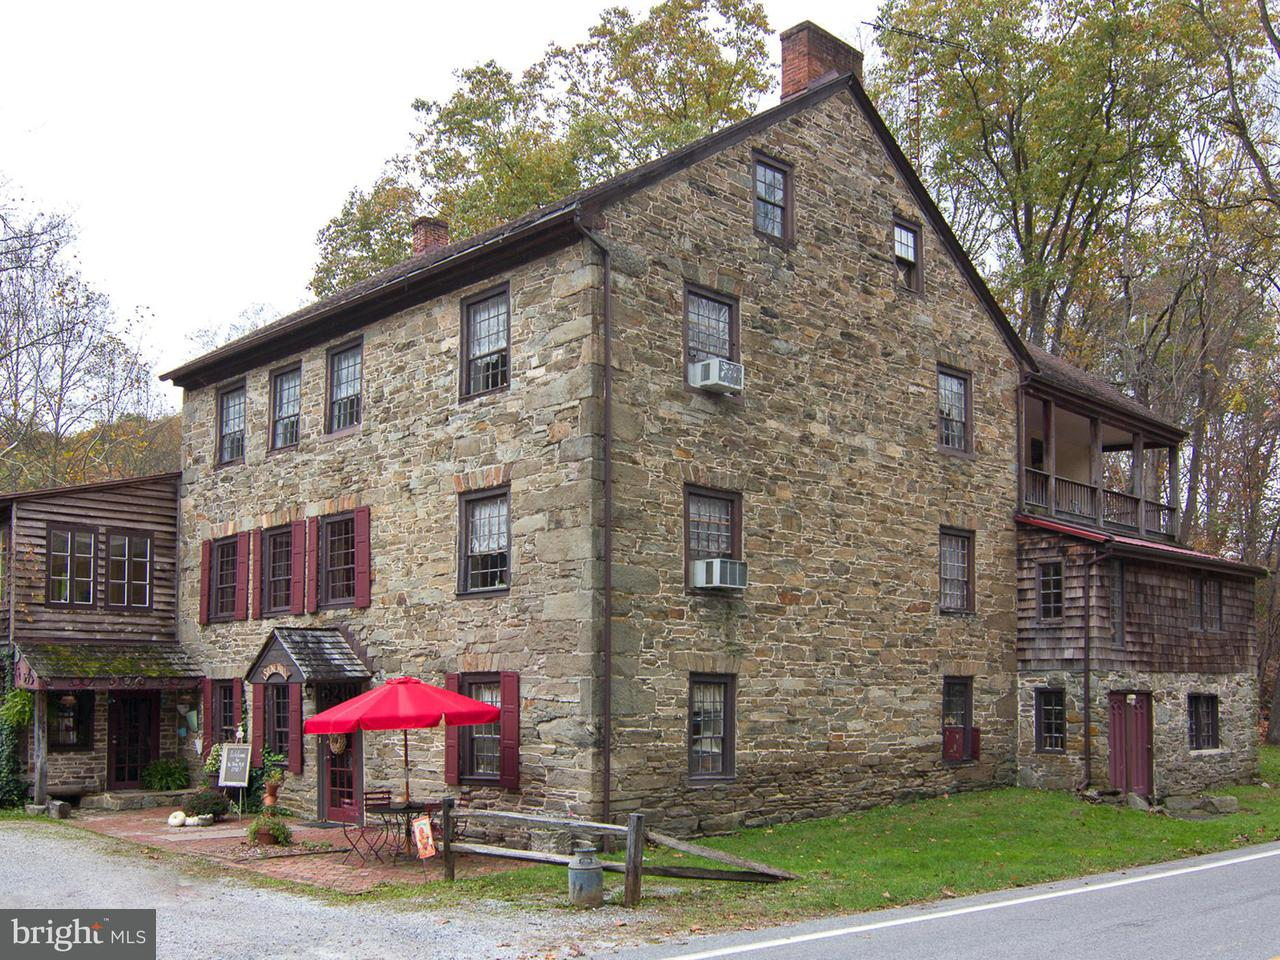 Commercial for Sale at 6210 Smoketown Rd Glenville, Pennsylvania 17329 United States